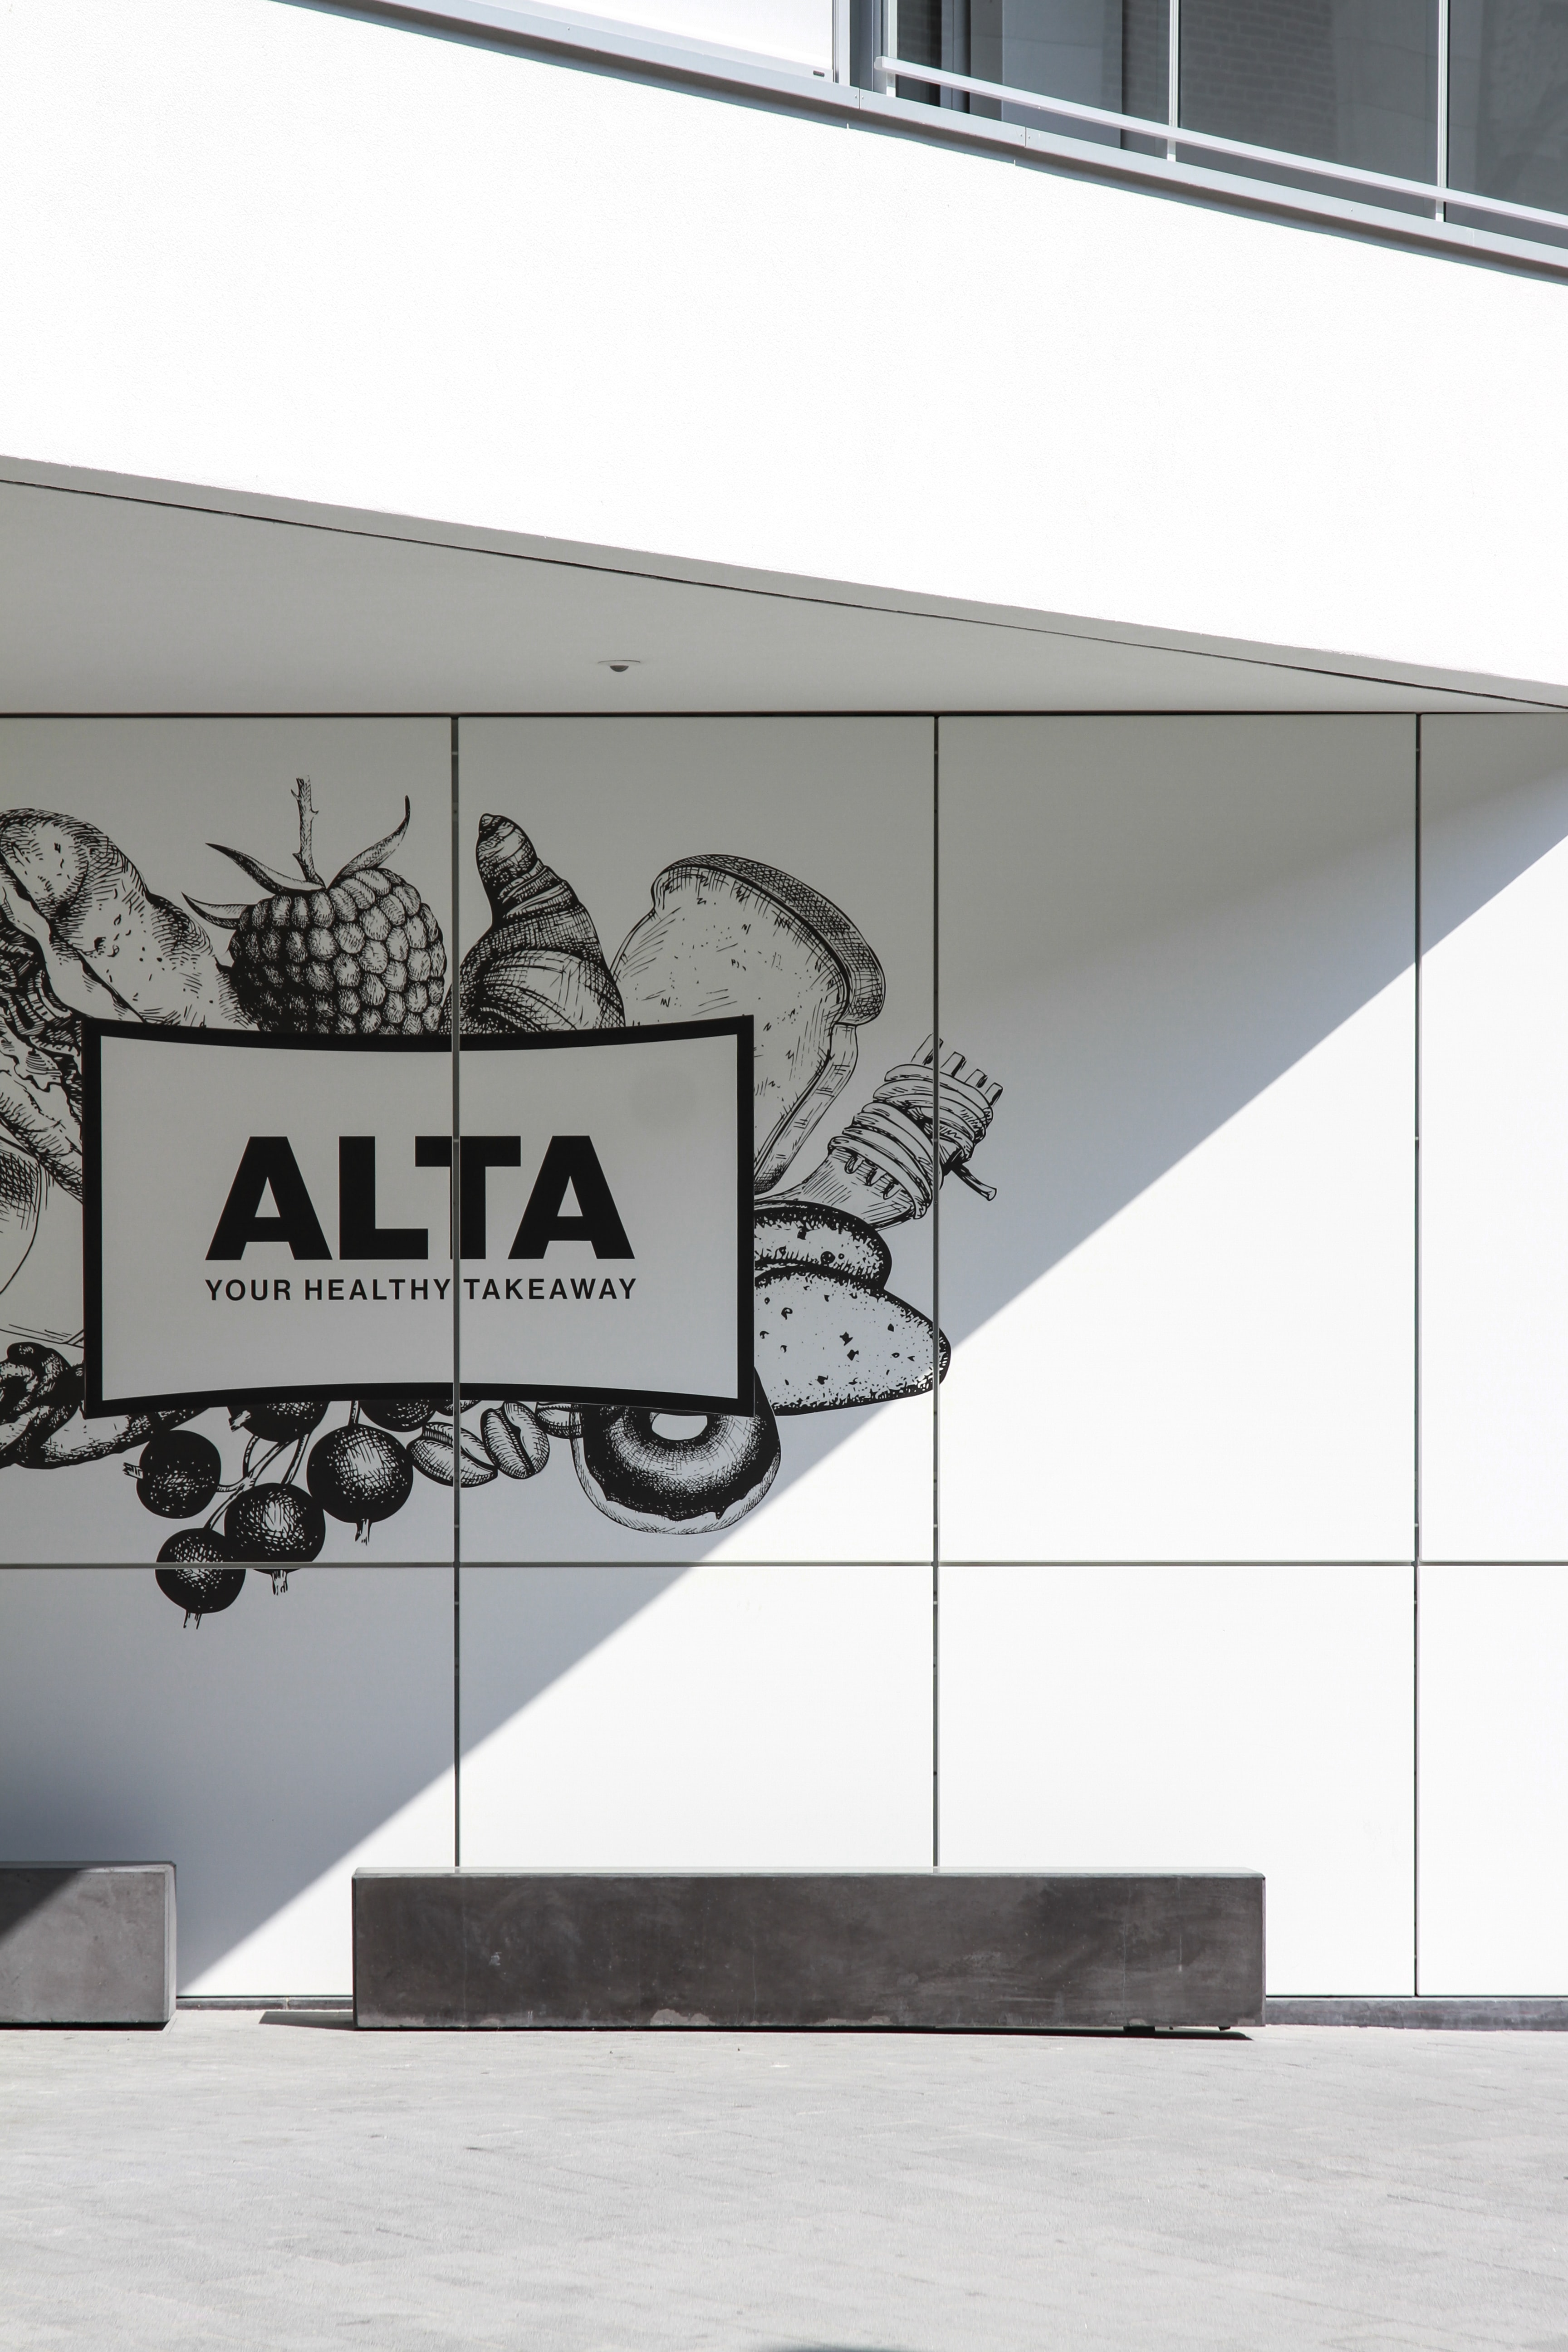 Alta wall sign